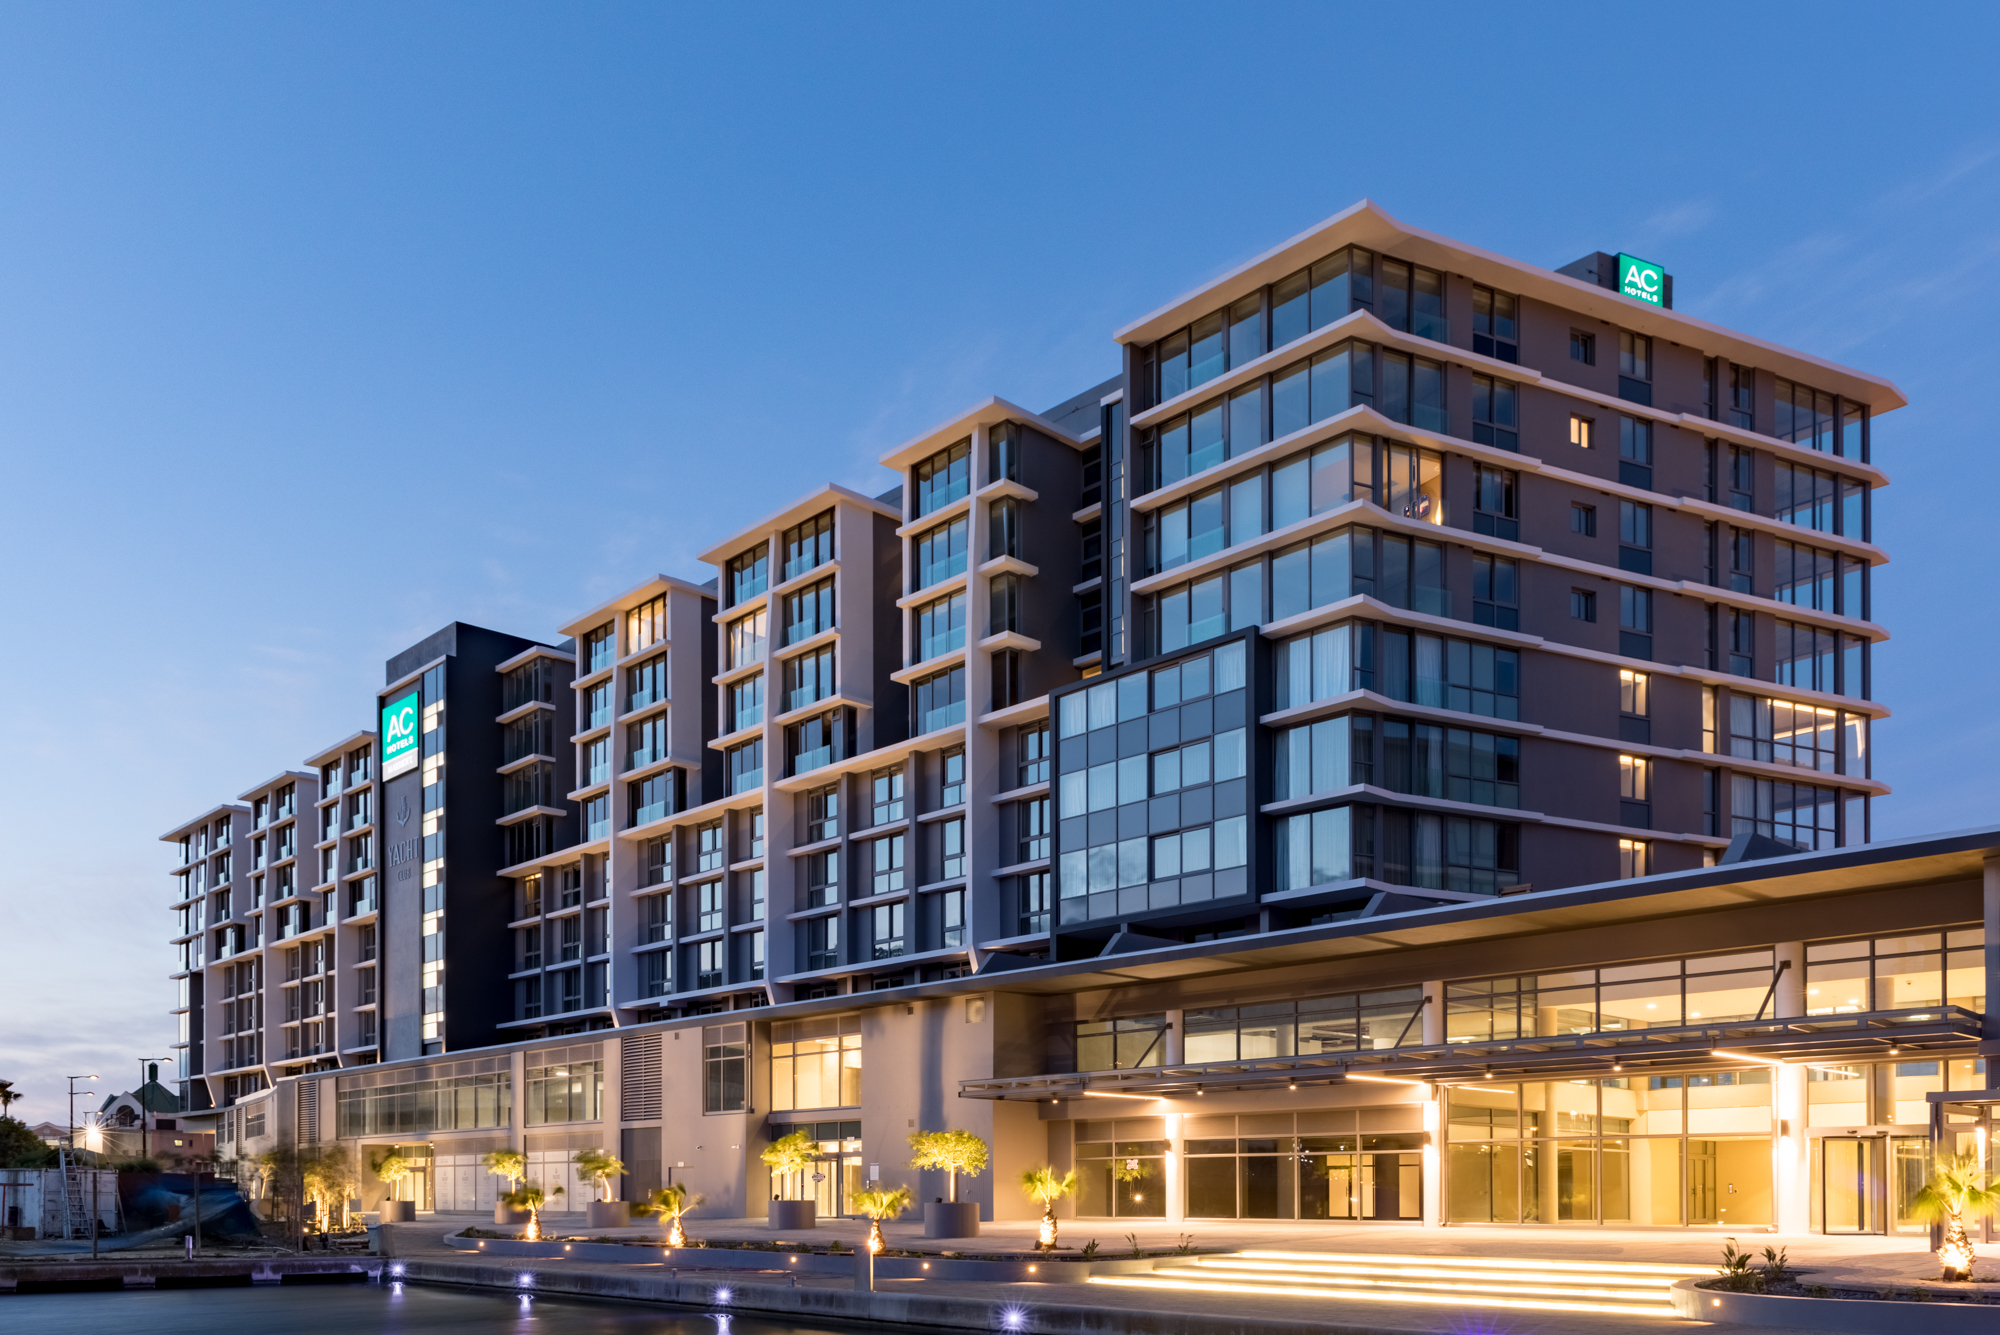 AC Hotels by Marriott opens first hotel in Africa